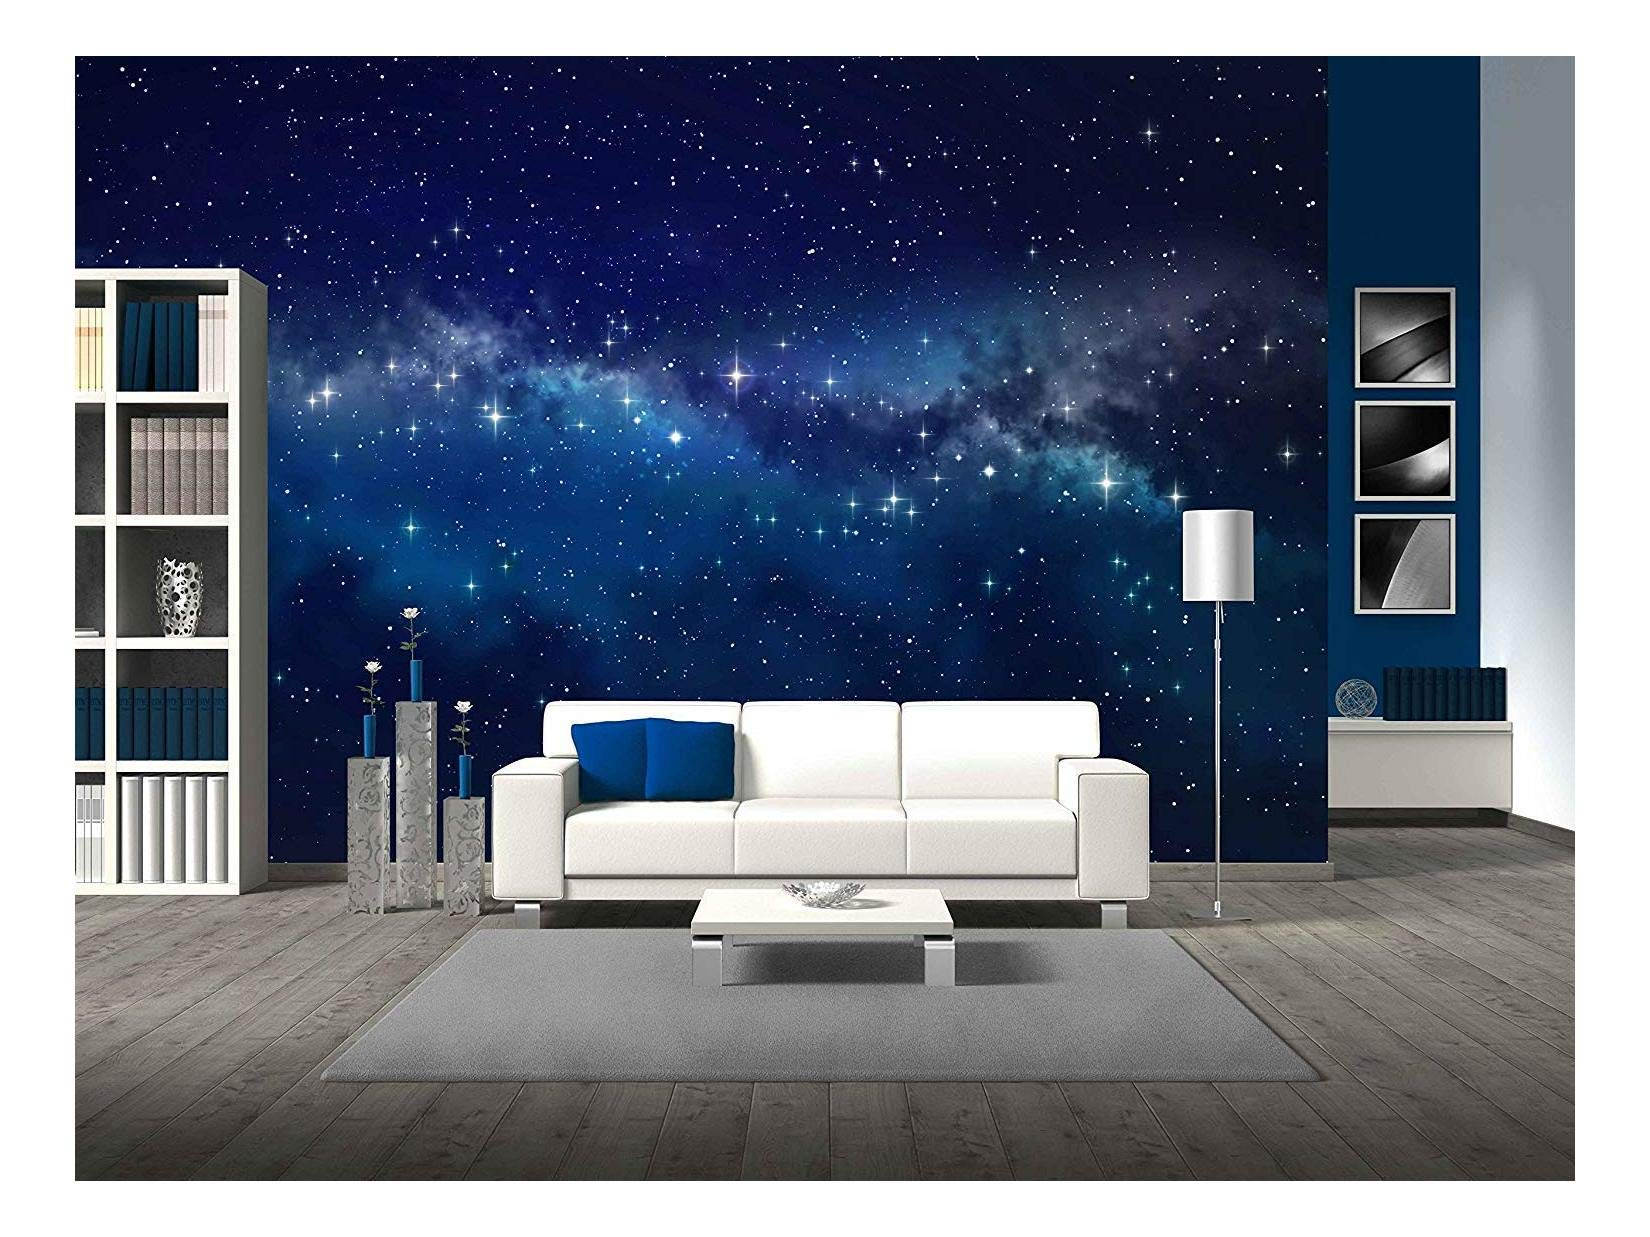 wall26 - Deep Space. High Definition Star Field Background - Removable Wall Mural | Self-Adhesive Large Wallpaper - 100x144 inches by wall26 (Image #1)